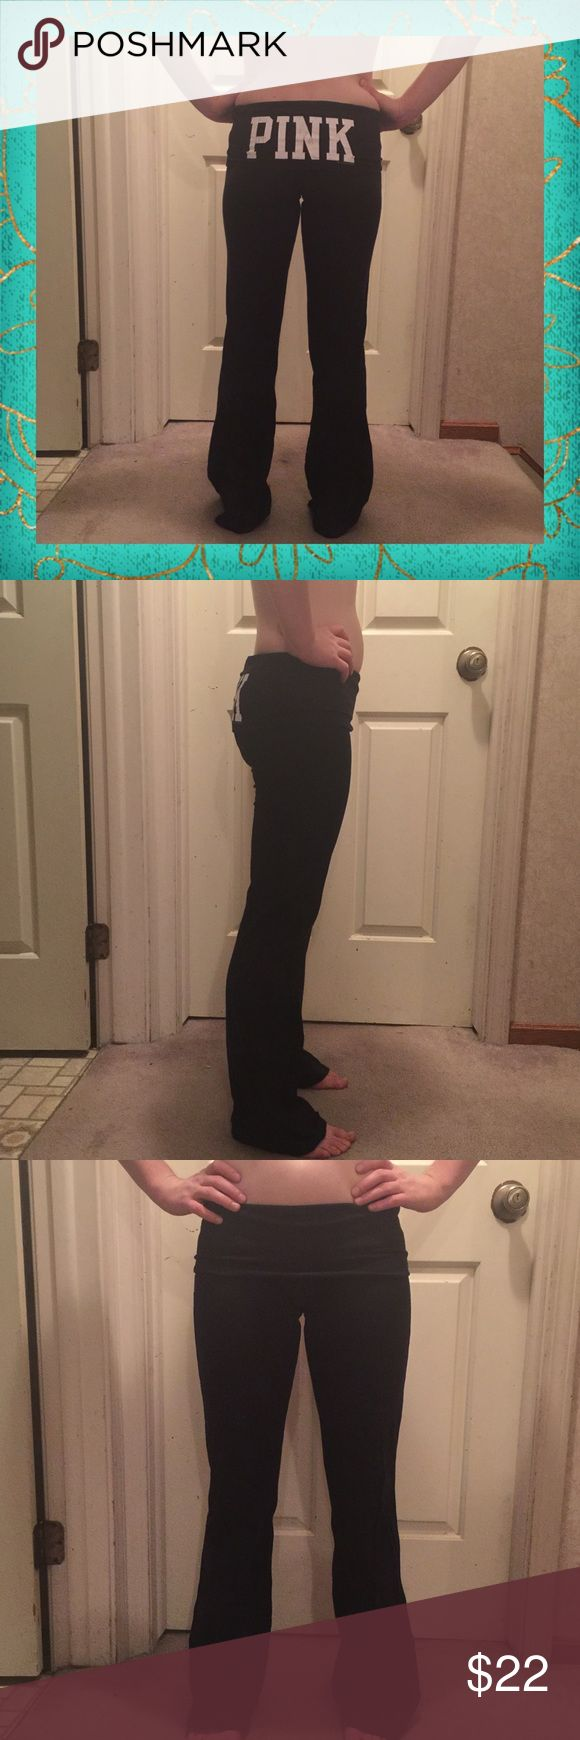 PINK YOGA PANTS No defects. Worn 2-3 times. Super cute. No holes or stains. NO TRADES OR HOLDS! Price is firm unless bundled. Size small, flare PINK Victoria's Secret Pants